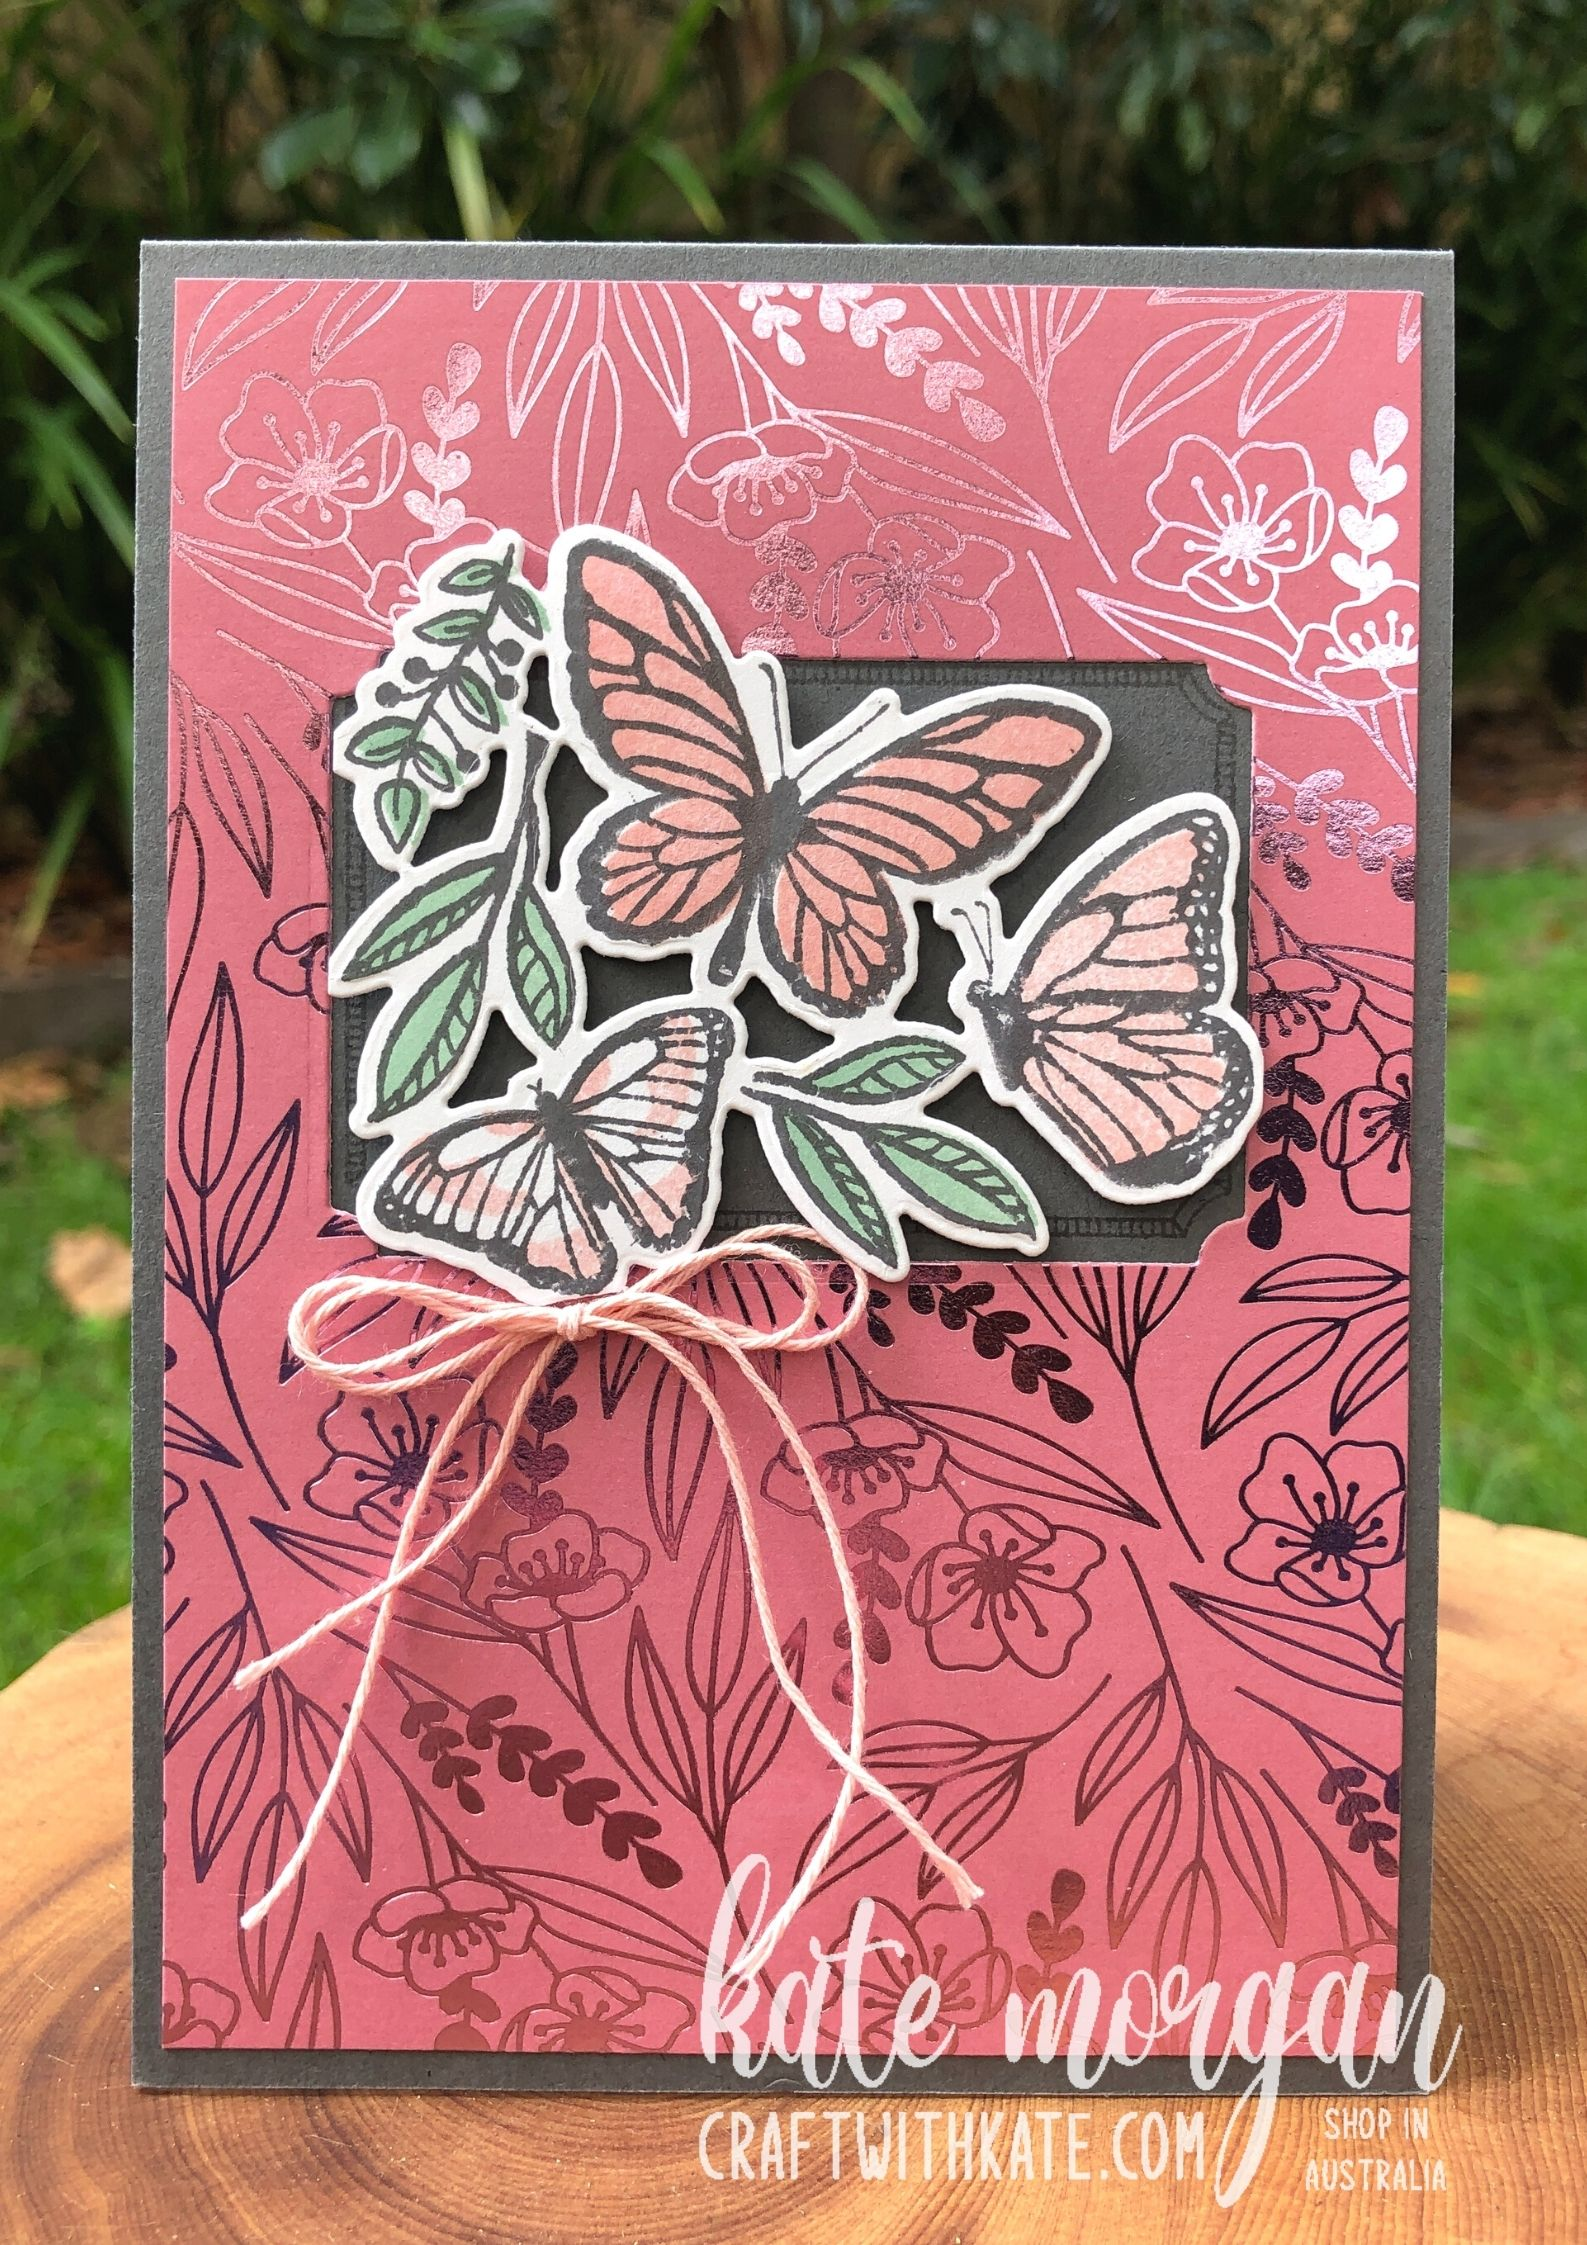 Floating & Fluttering Bundle Basic Gray CCBH 2021 by Kate Morgan, Stampin Up Australia